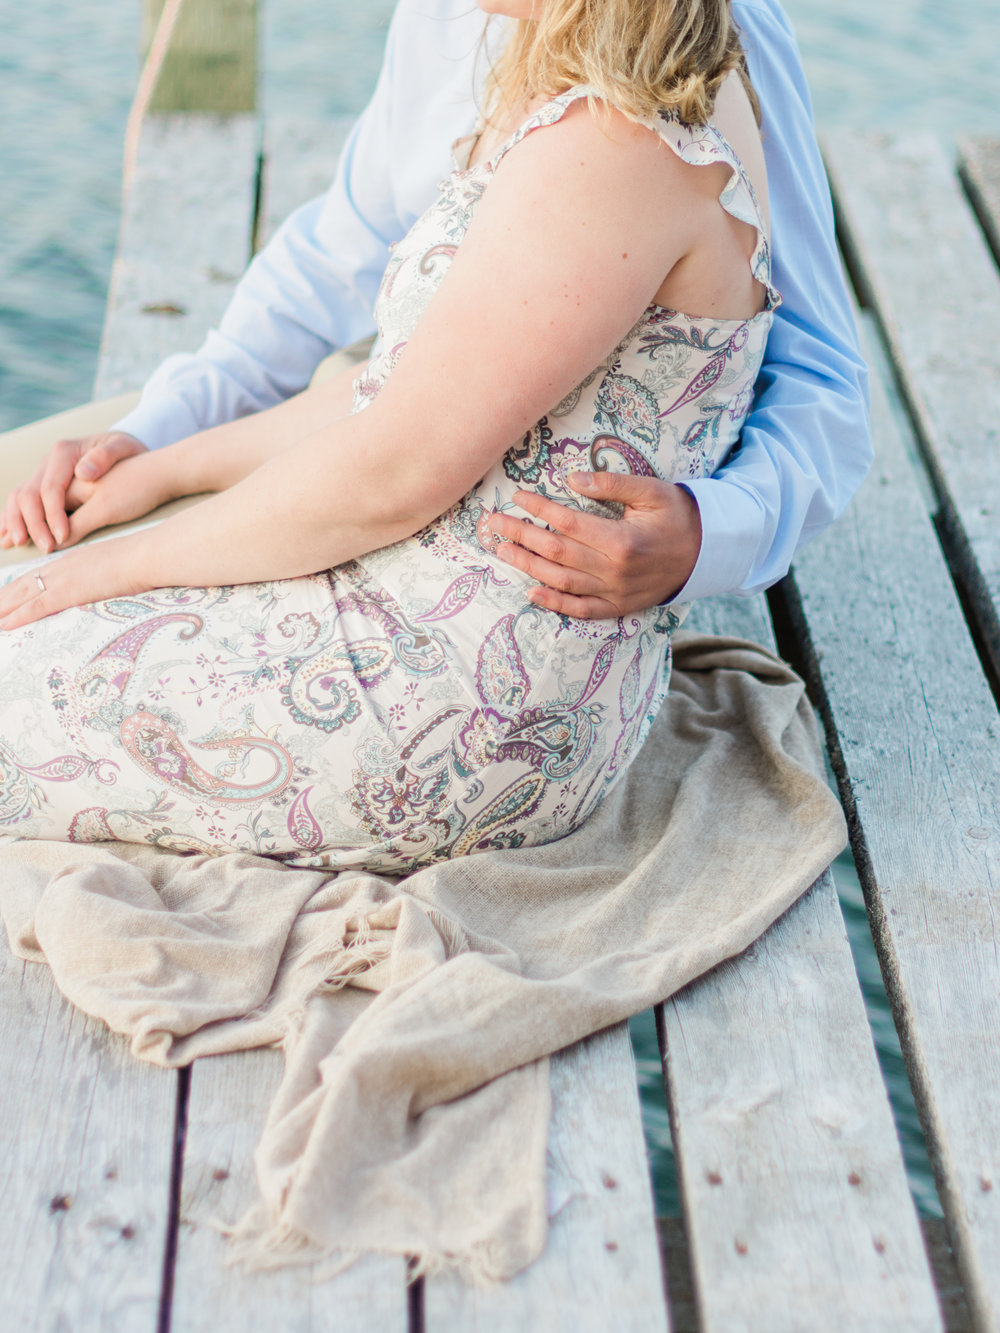 Jacqueline Anne Photography - Alex and Andrew Engagement at Peggy's Cove - Halifax-70.jpg